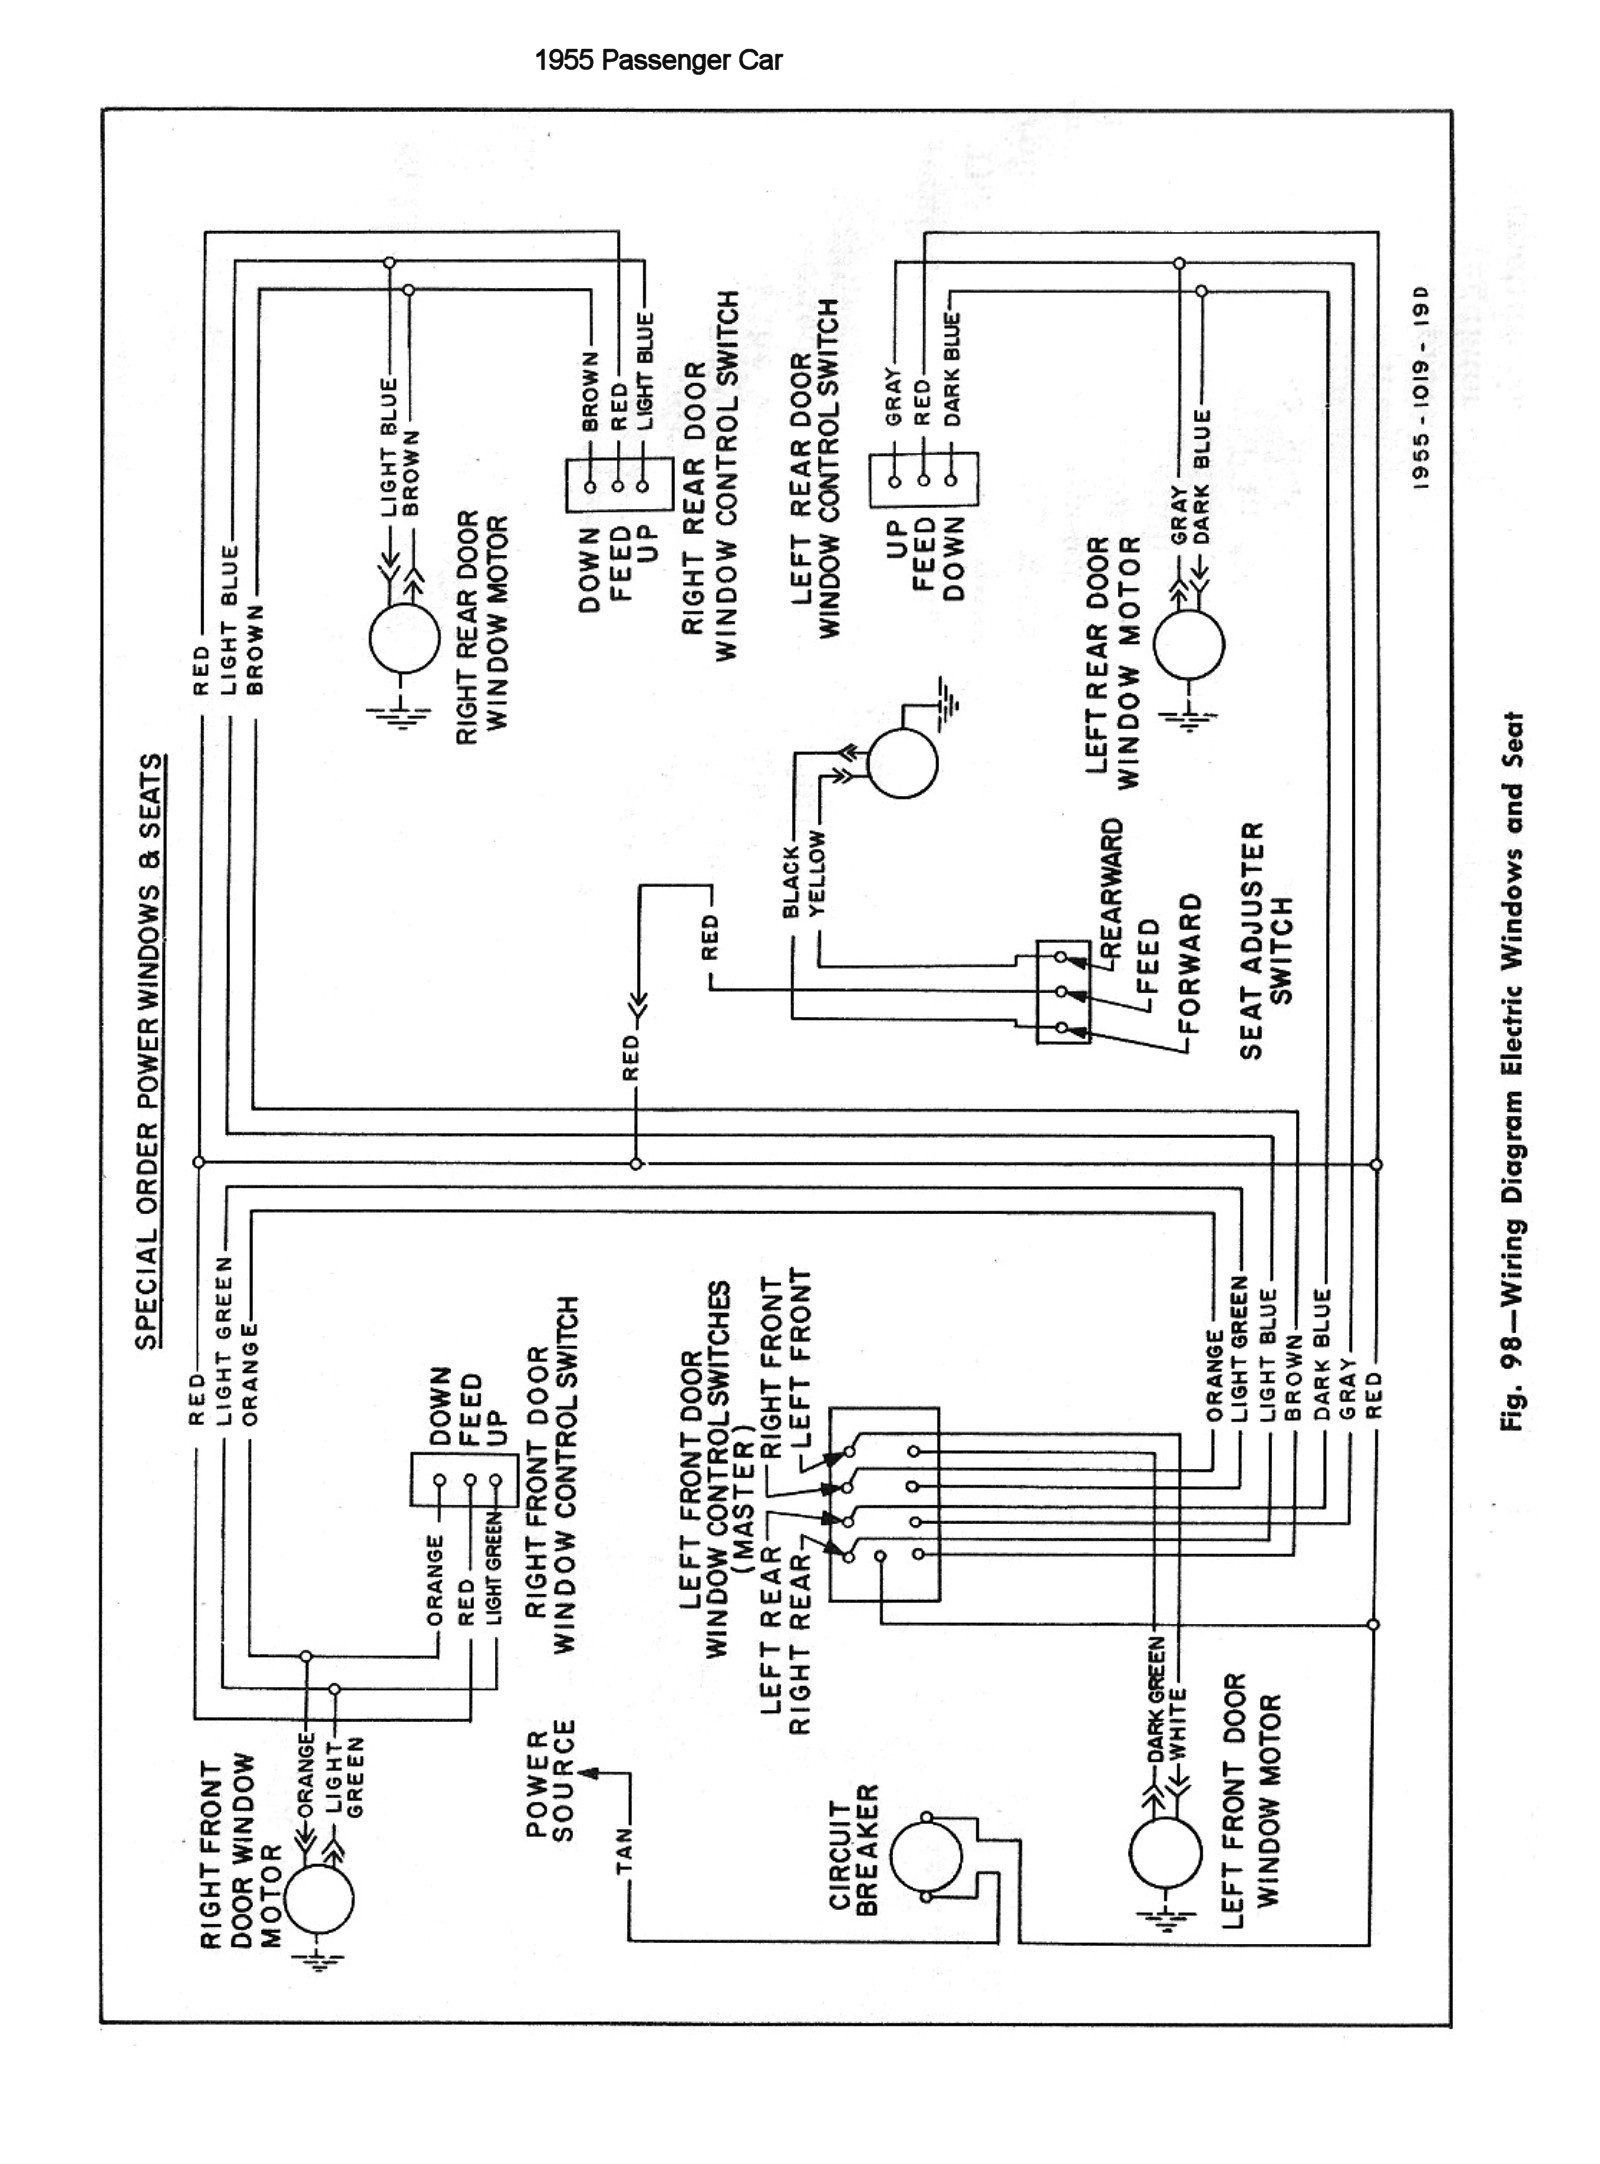 1955 Chevy Turn Signal Wiring Diagram | WiringDiagram.orgPinterest